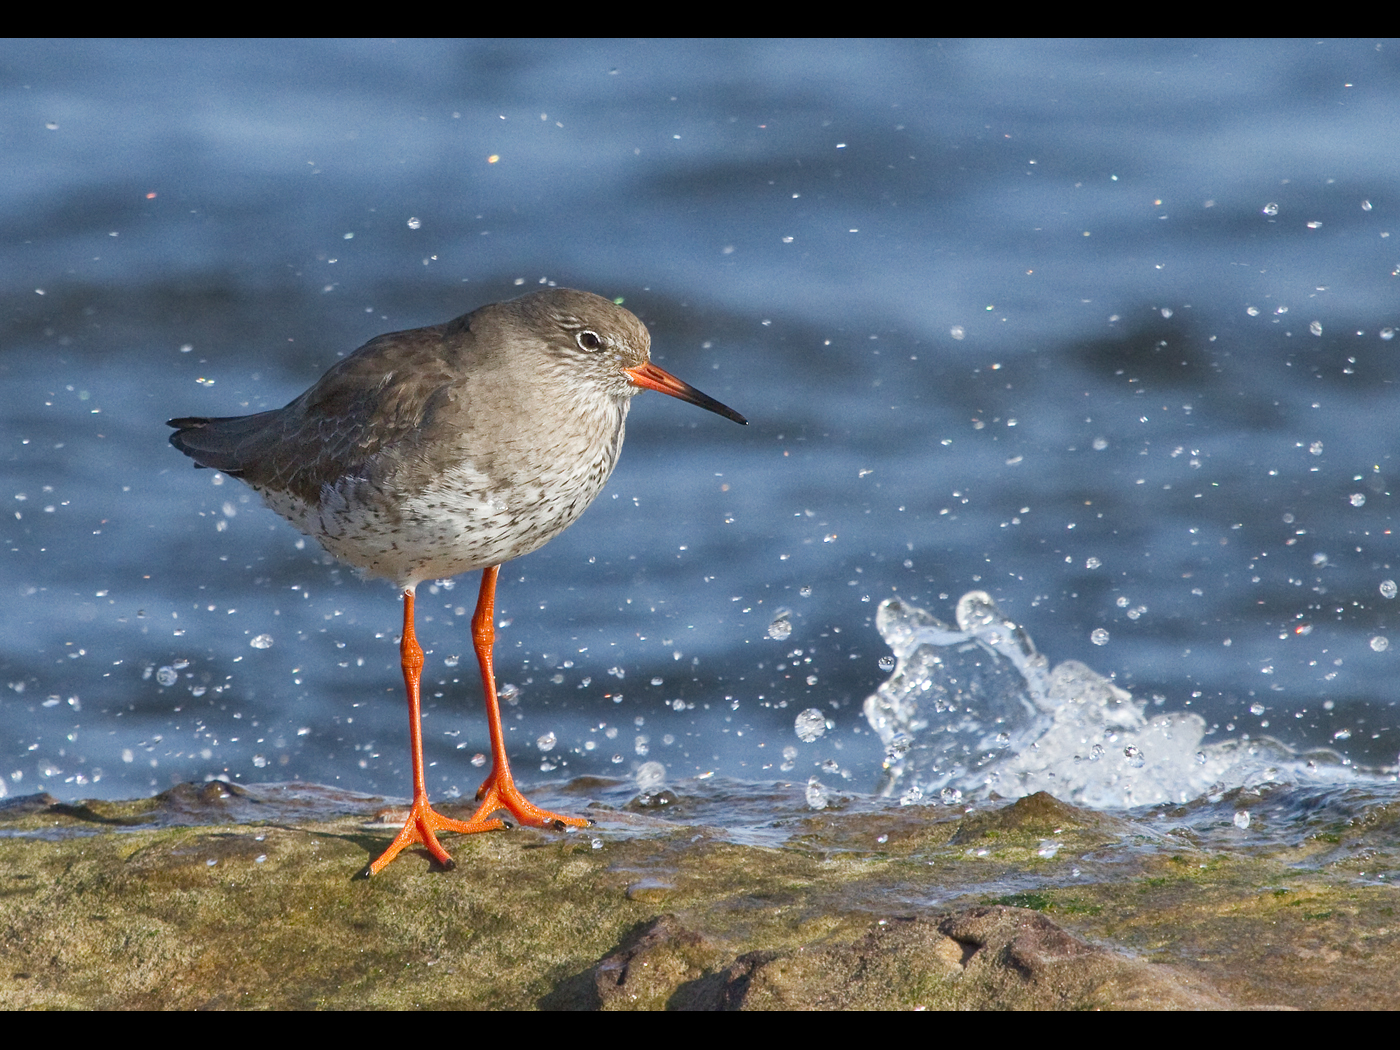 Projected Image - 1st Place: Redshank by Stephanie Cowie